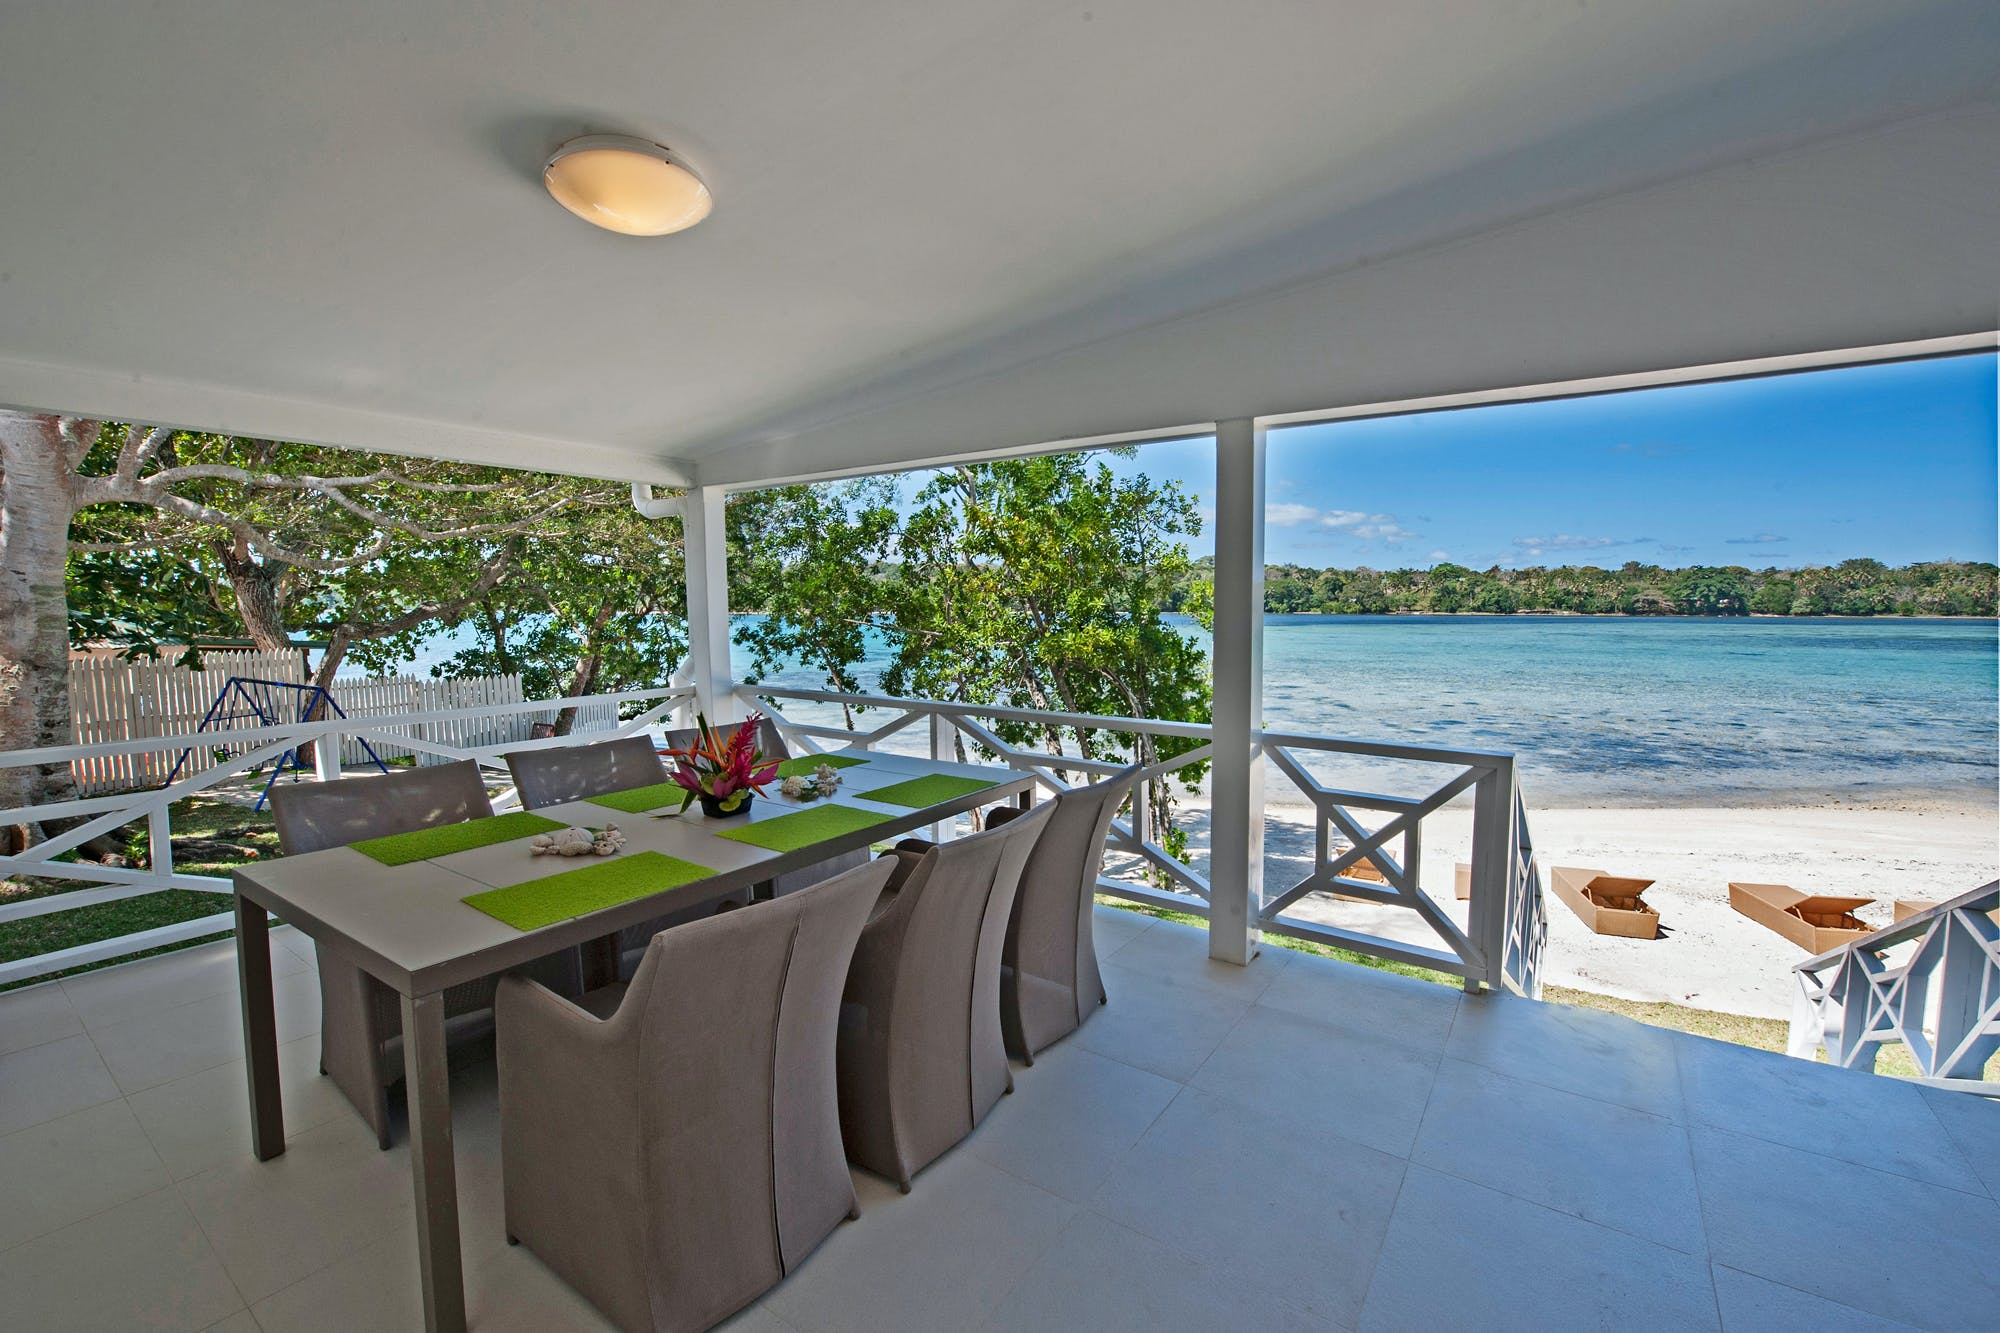 Aqua Blue Beach House - Dine by the water